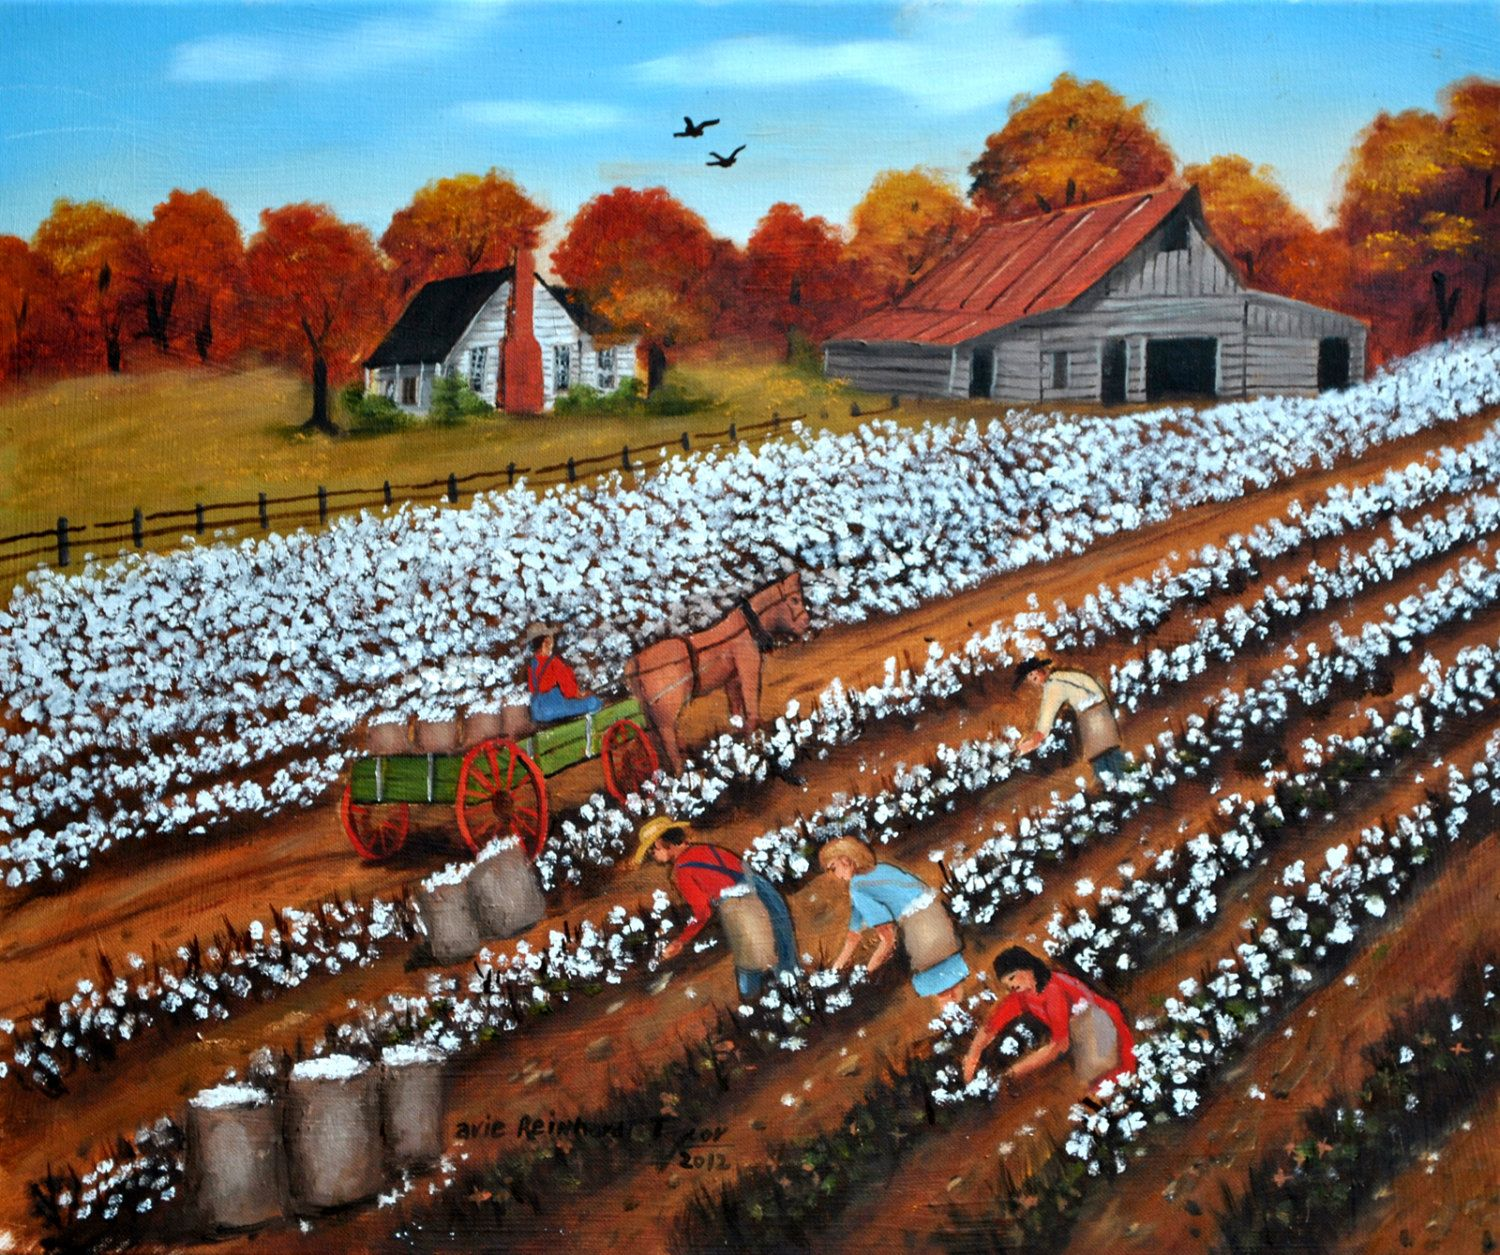 Cotton Picking Pickers Field Original Oil Painting Folk Art Carolina Country Scene Barn Farm House Autumn Wagon Horse Arie Reinhardt Taylor by jagartist on Etsy